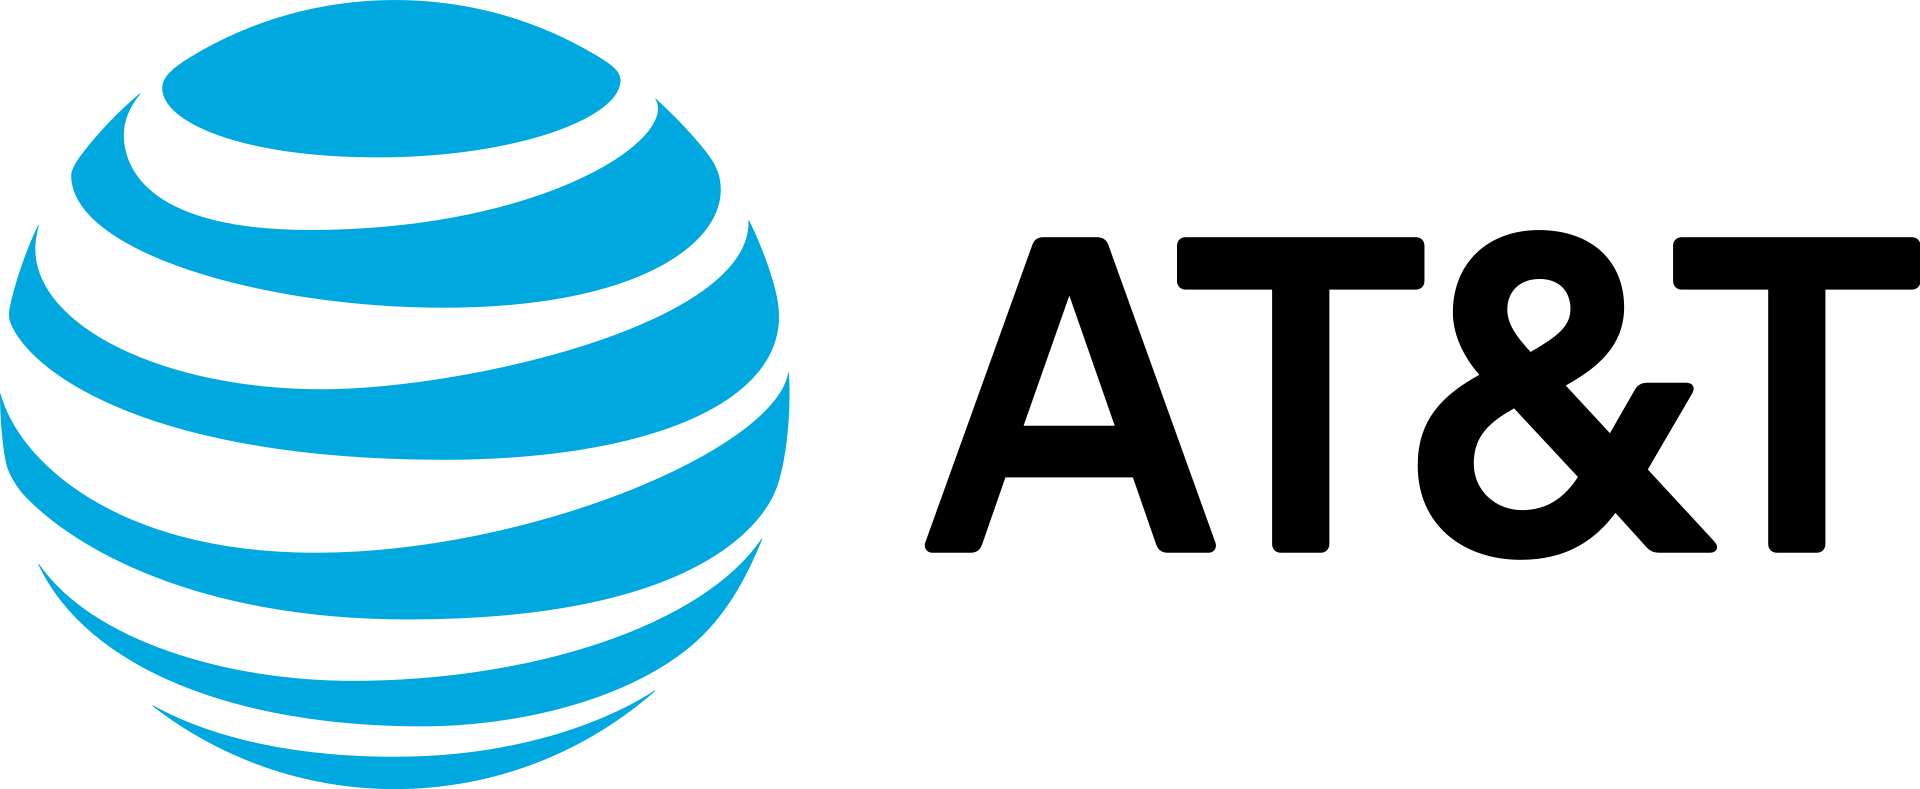 Is It Time to Buy AT&T?